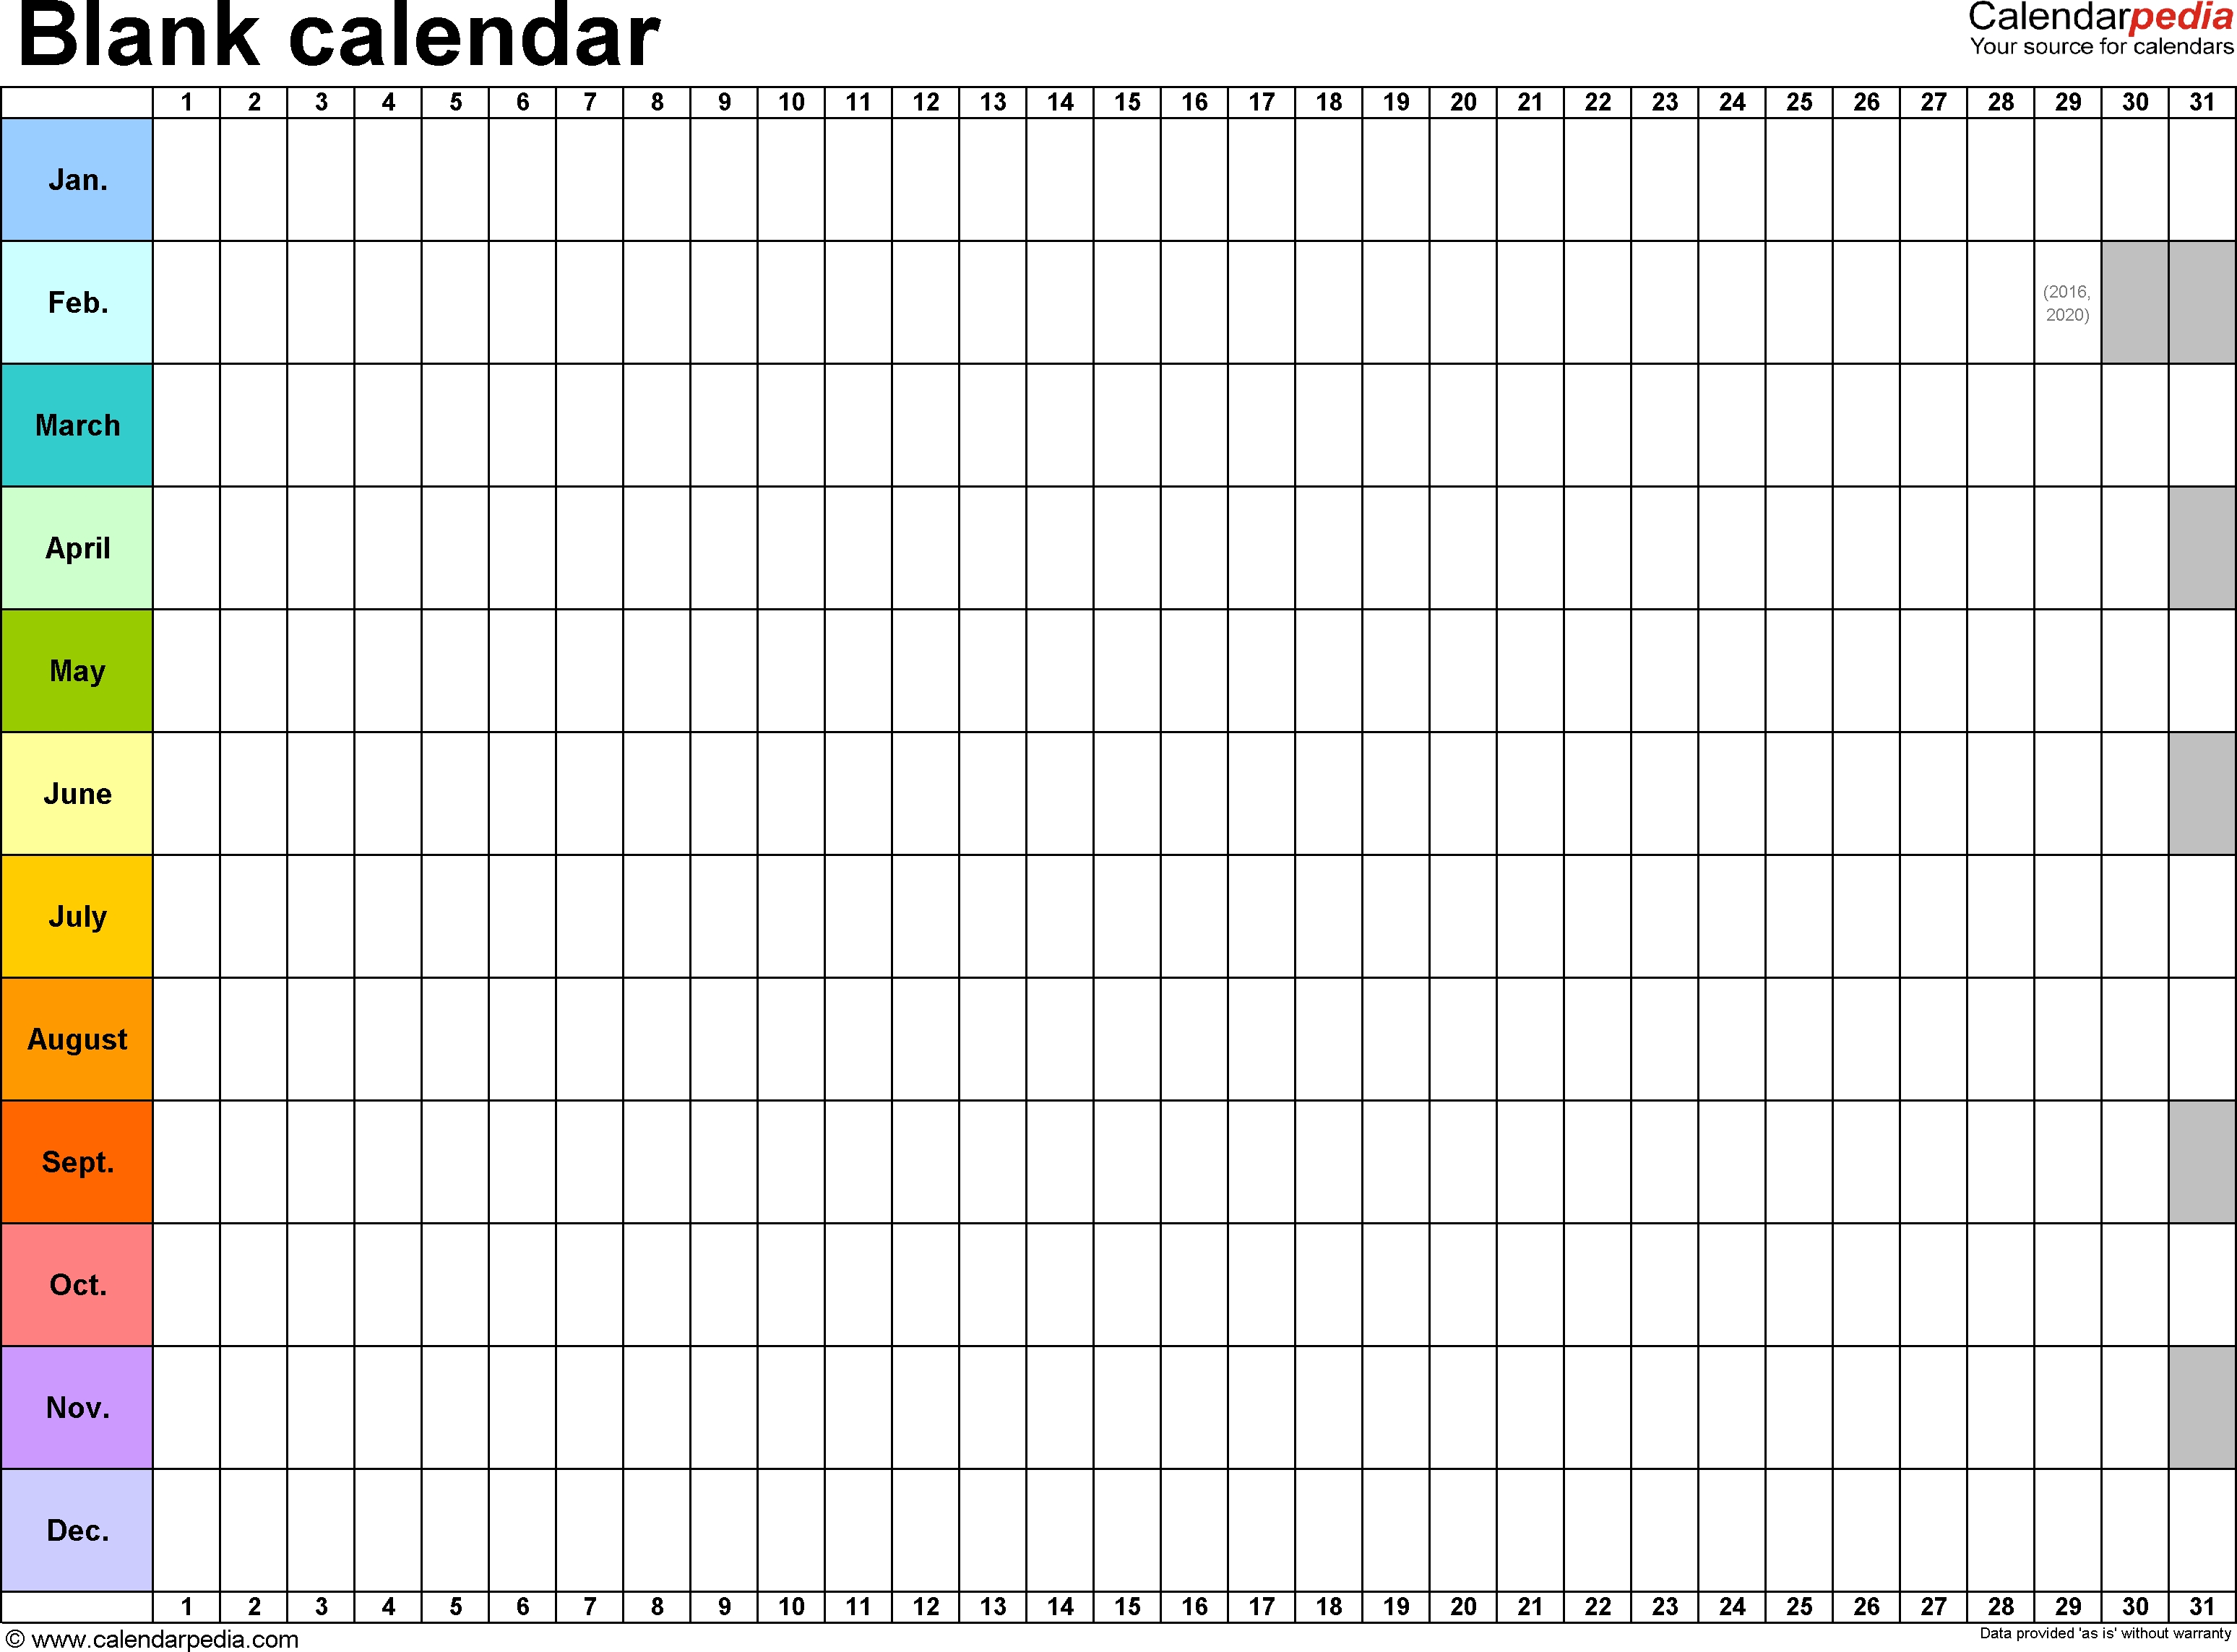 Monthly Schedule Template Blank Calendar Free Printable Icrosoft intended for Blank Monthly Calendar Template Pdf